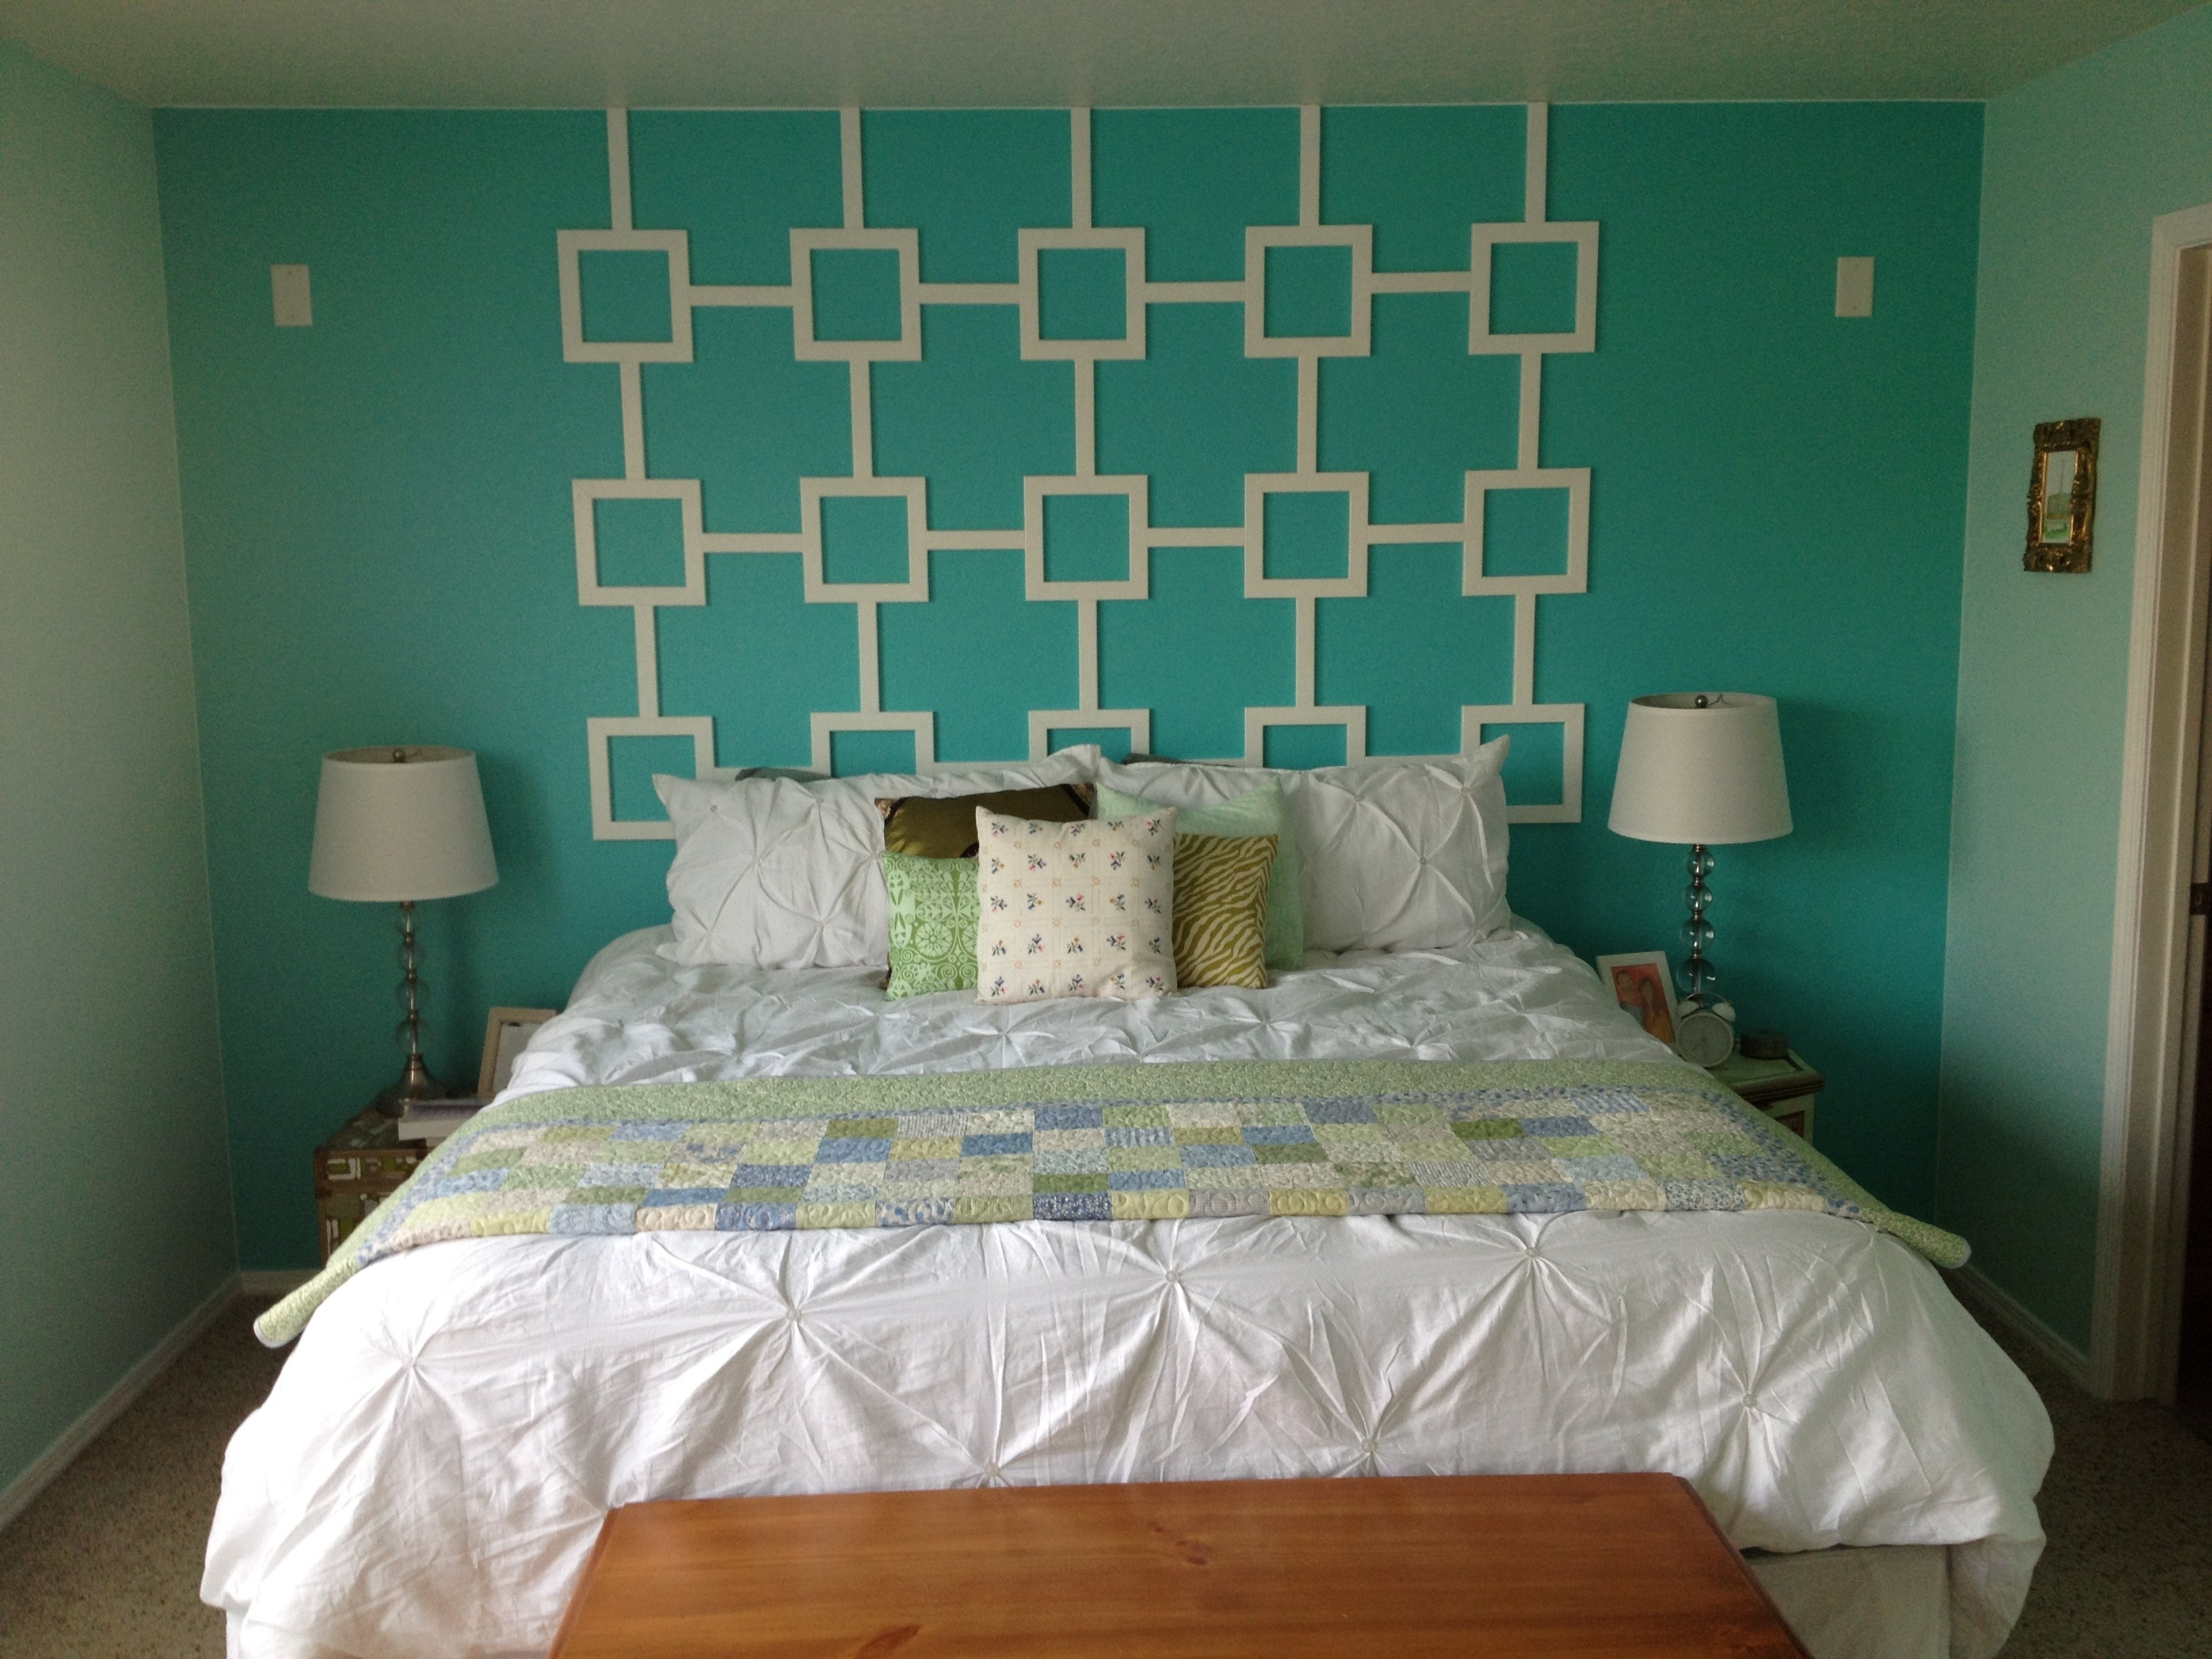 10 Great Do It Yourself Bedroom Ideas diy bedroom decorating best home decor ideas ace related post design 2021